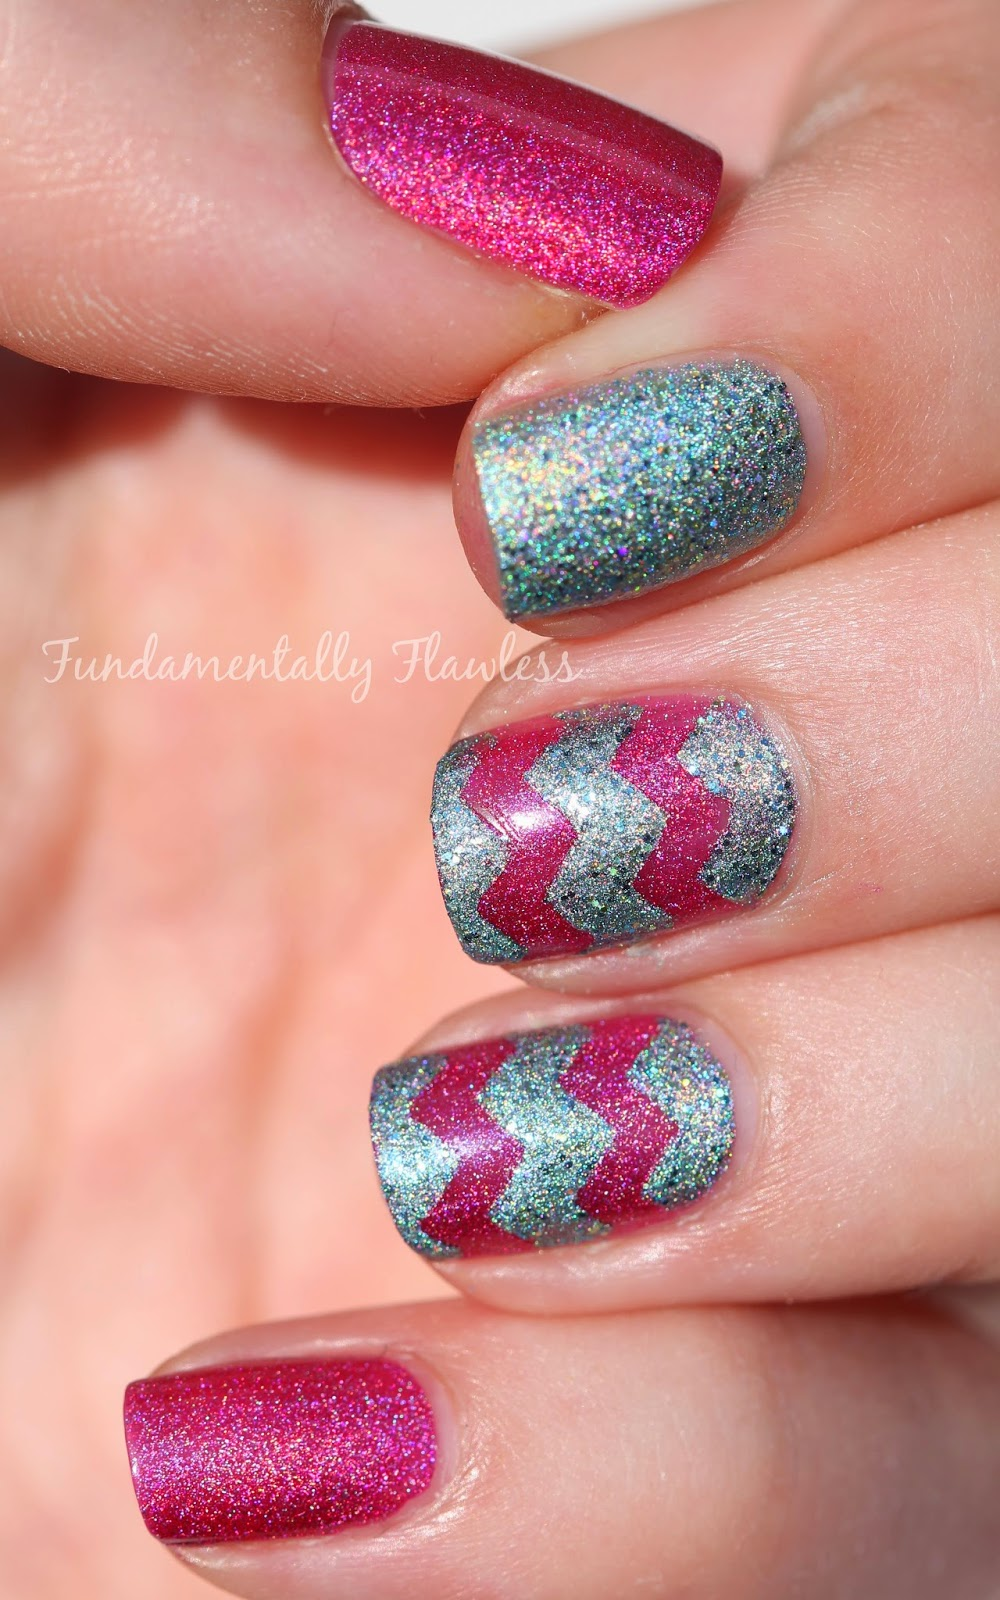 Tami Beauty Nail Polish Chevron Nail Art